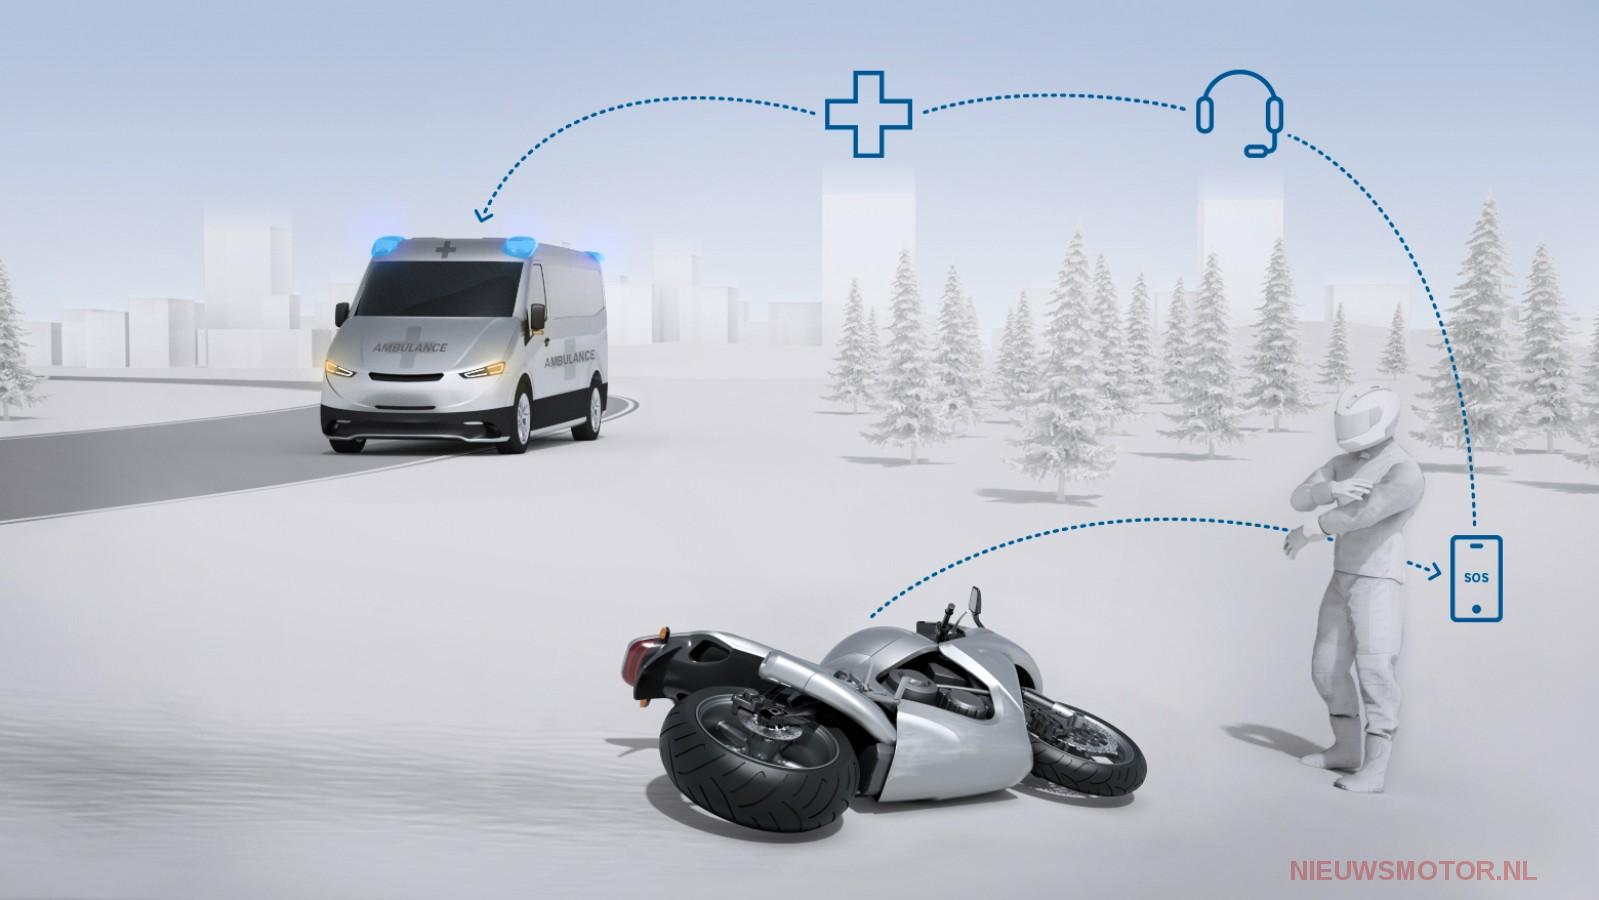 Bosch assistance delivery service: after an emergency email call to an accident via your smartphone - the news engine